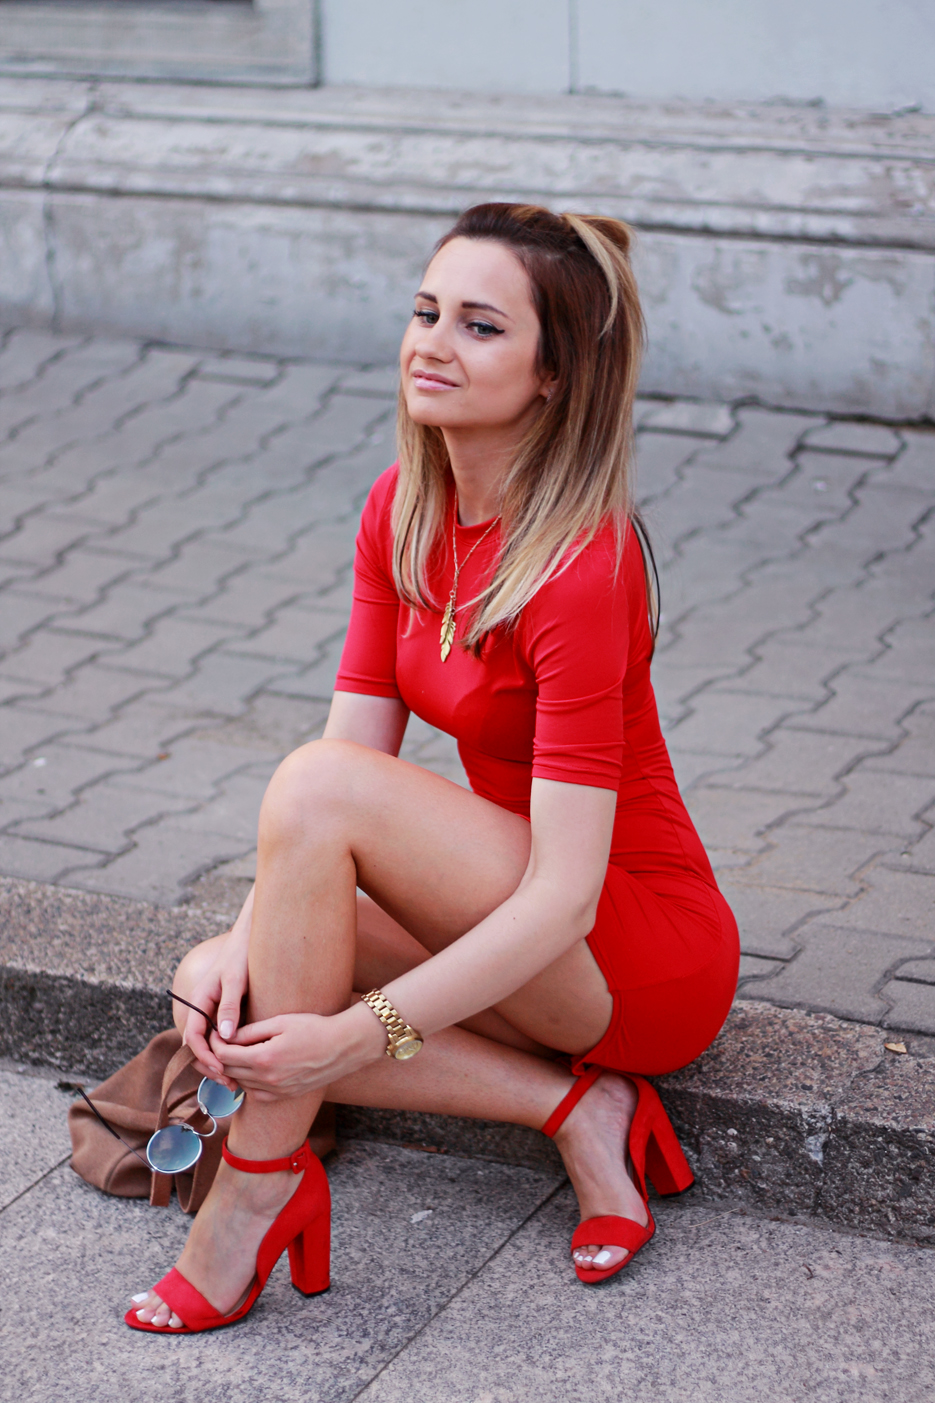 best summer street style fashion red dress blonde pretty girl tumblr ootd outfit lookbook look what to wear